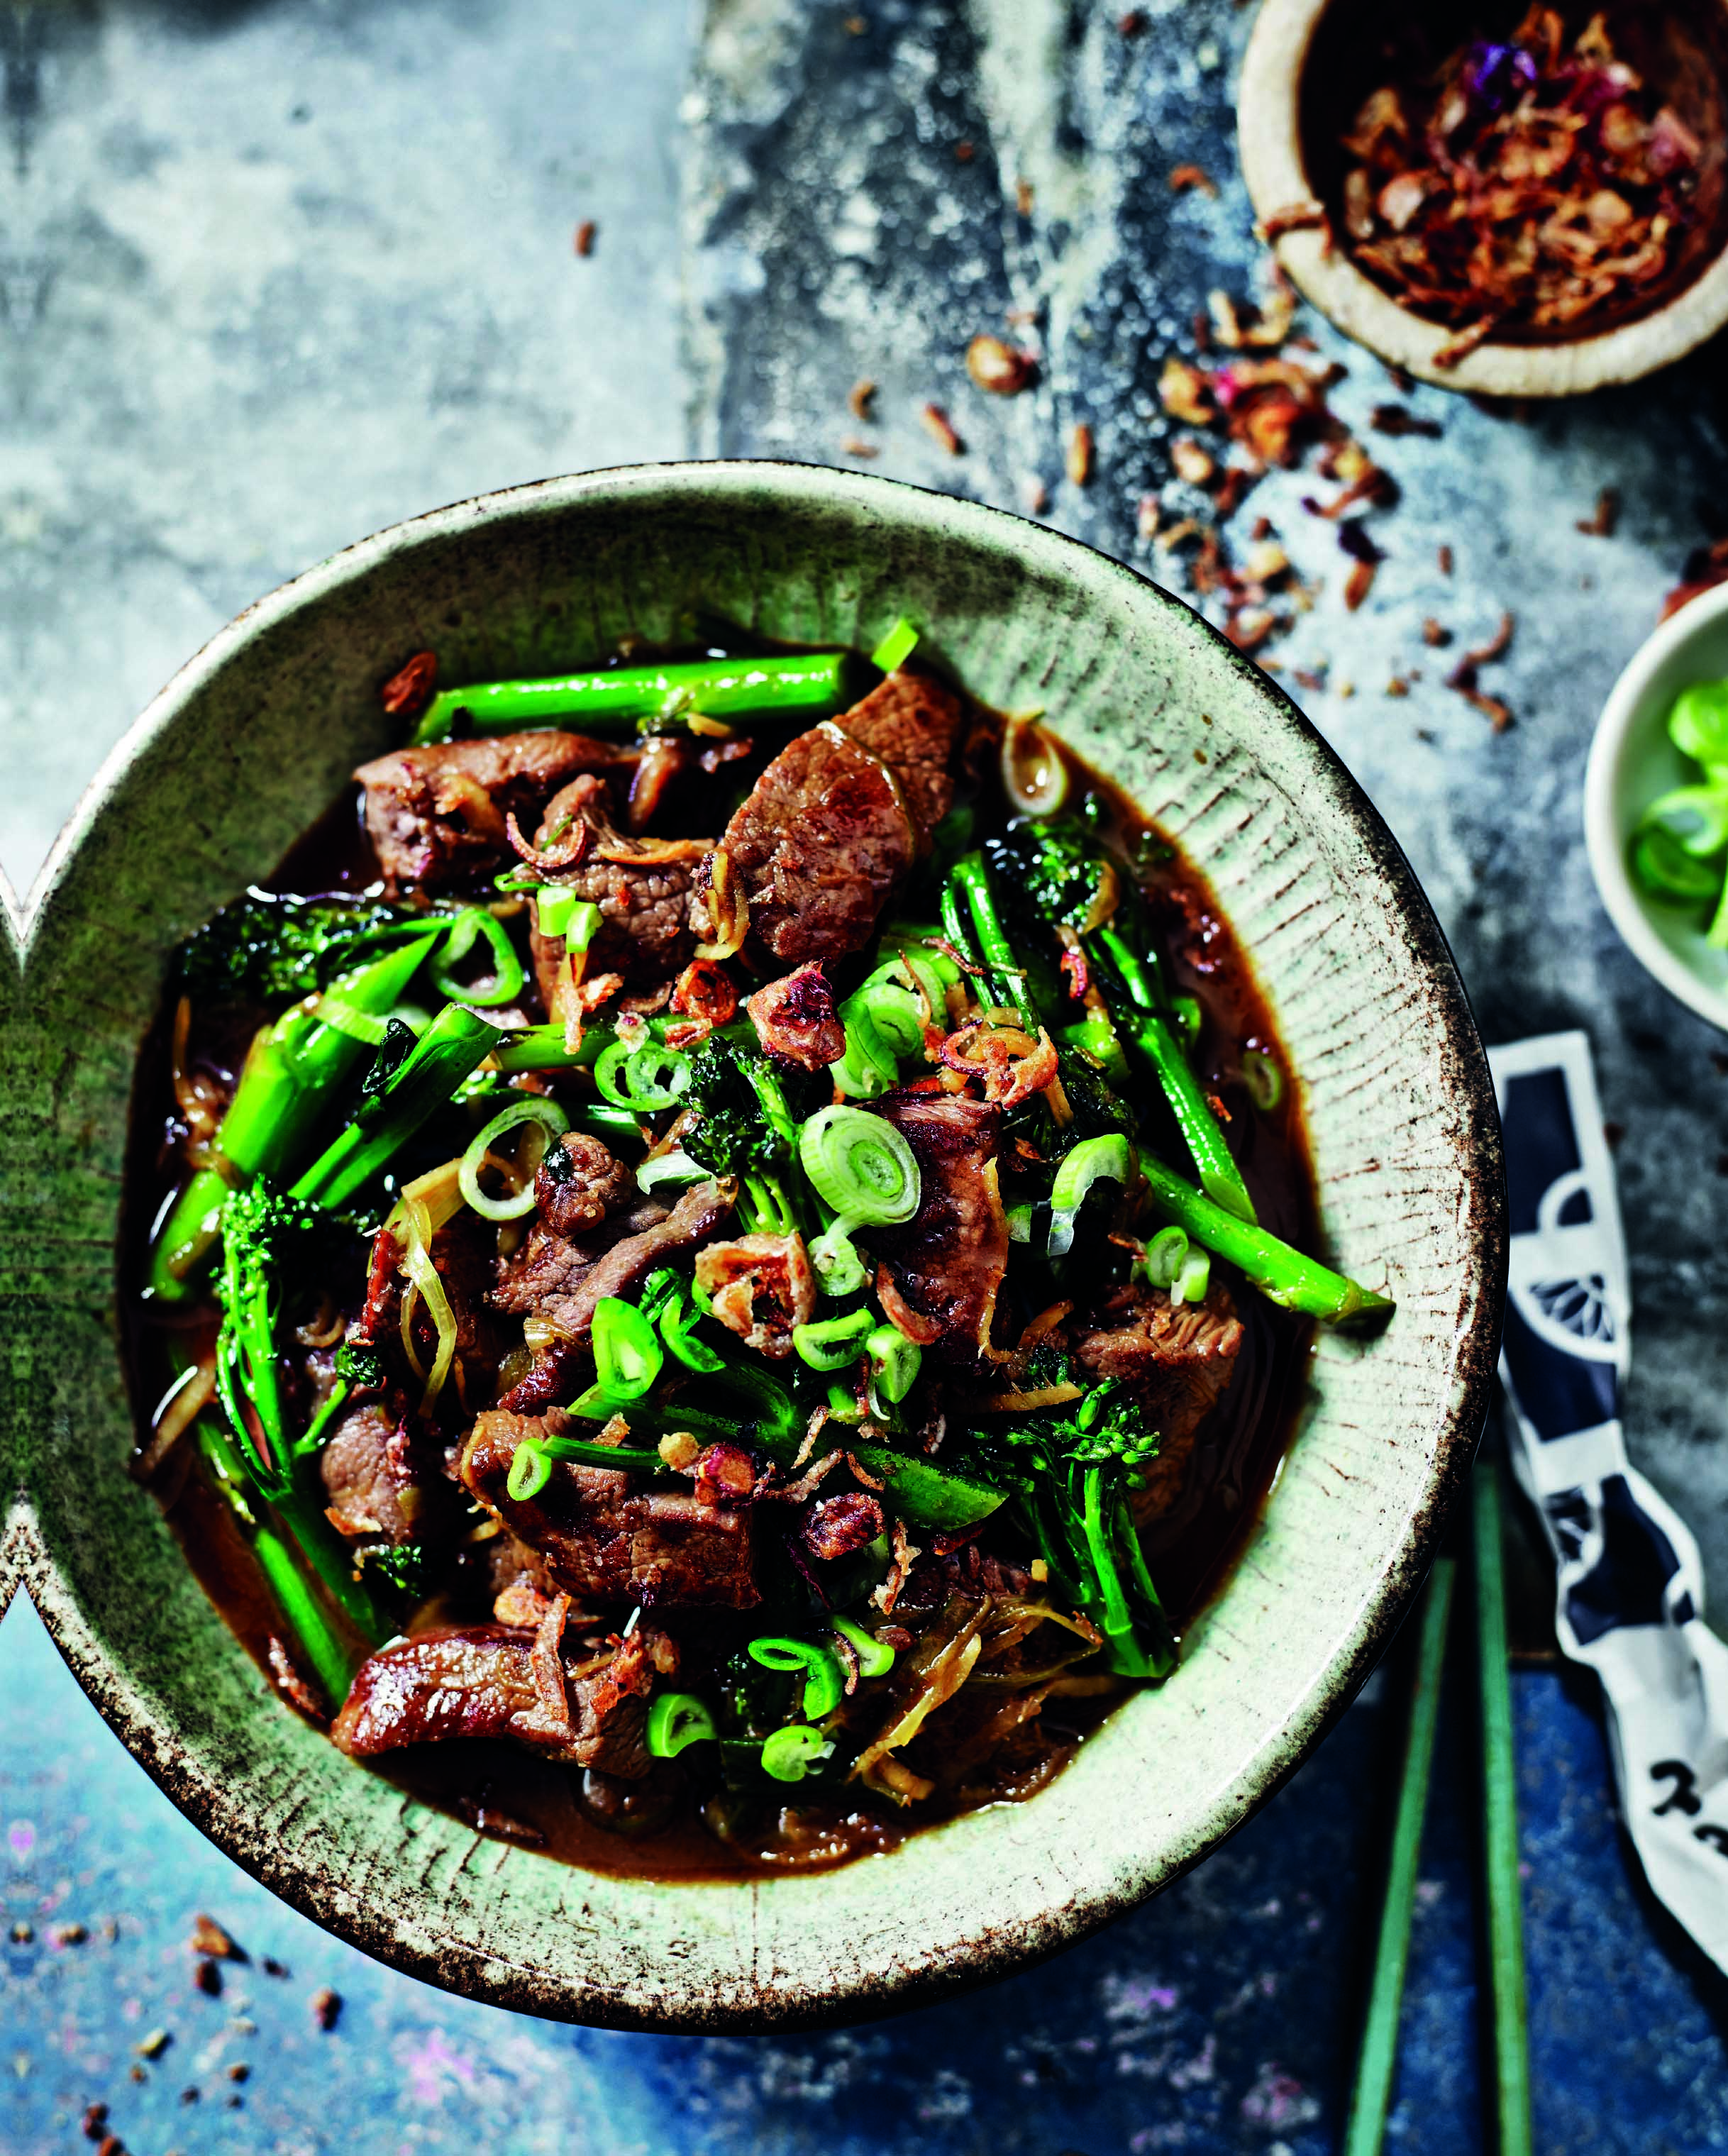 Flash-fried venison and broccoli with ginger and spring onion